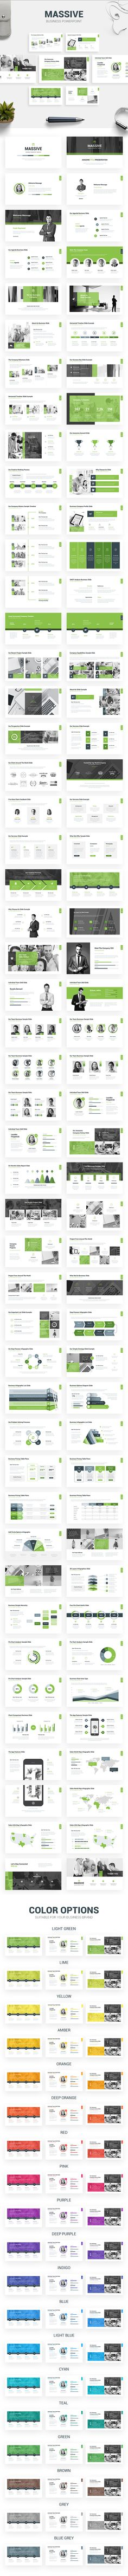 Massive - Business Presentation Template - Business #PowerPoint Templates